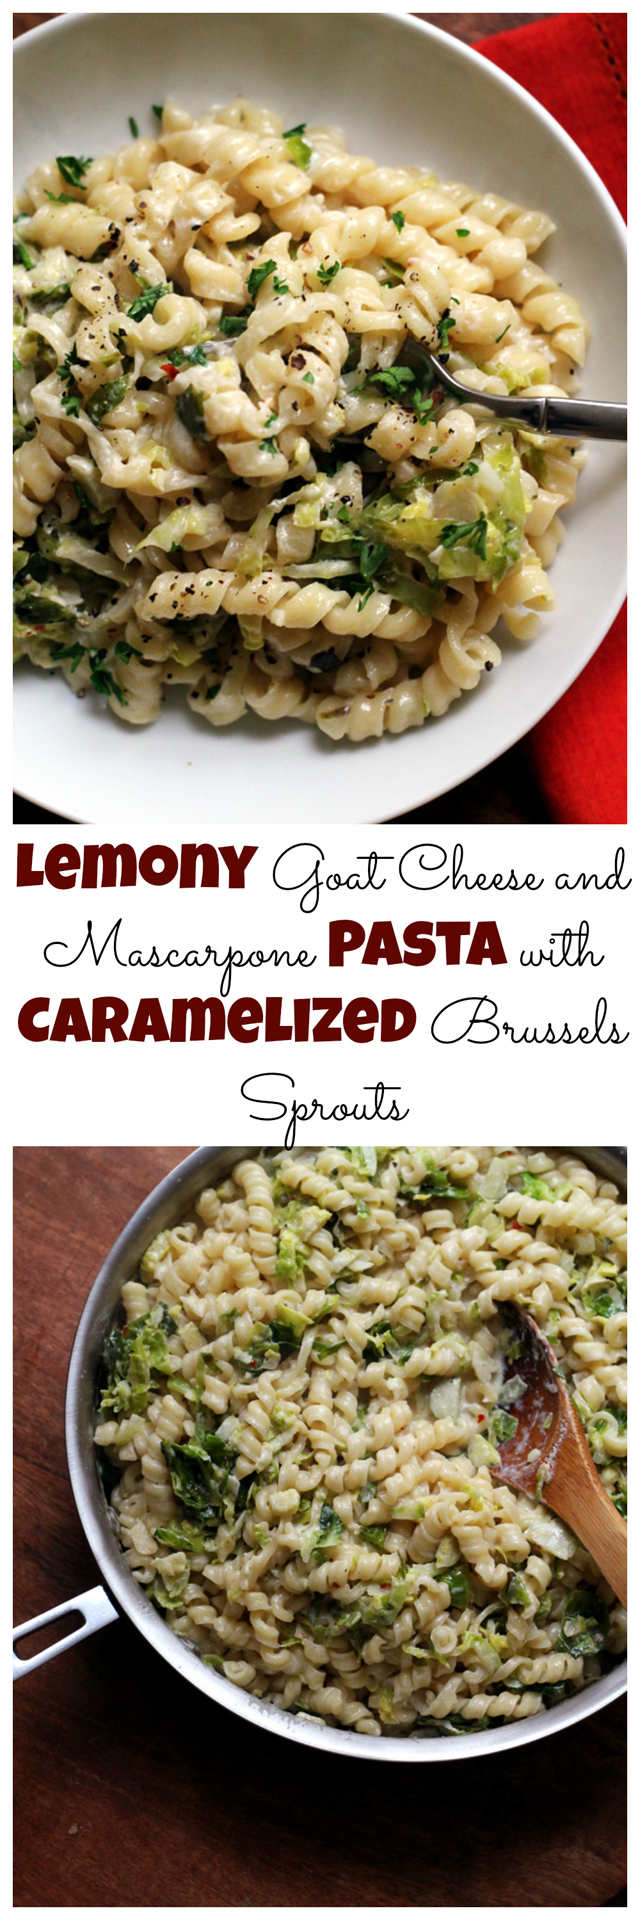 lemony goat cheese and mascarpone pasta with caramelized brussels sprouts